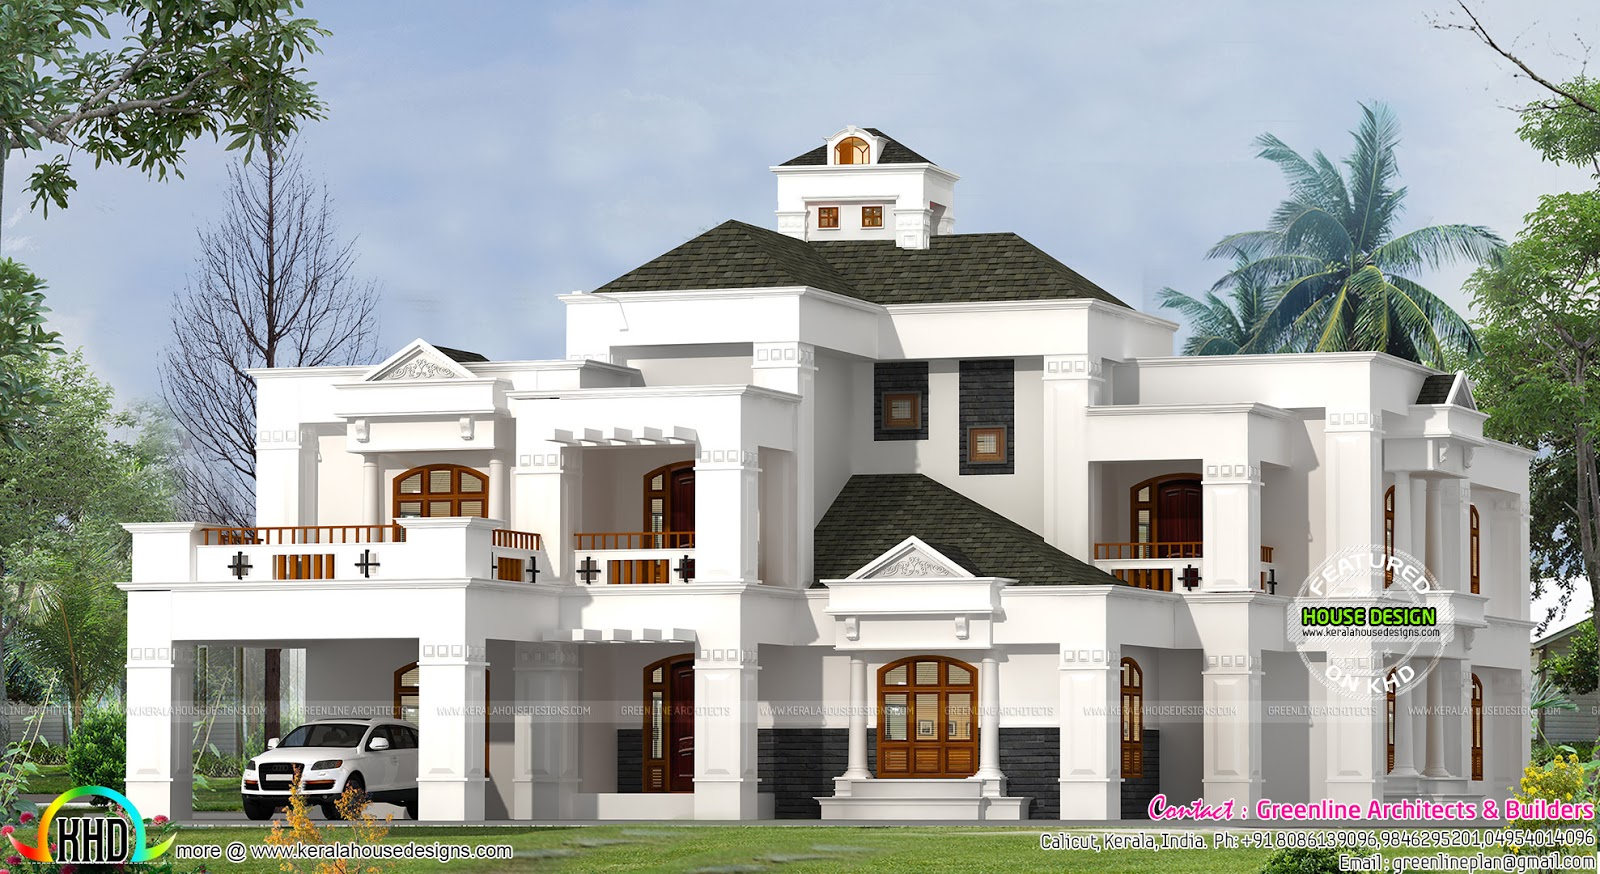 Luxury 4 bedroom villa kerala home design and floor plans for 4 bedroom villa designs